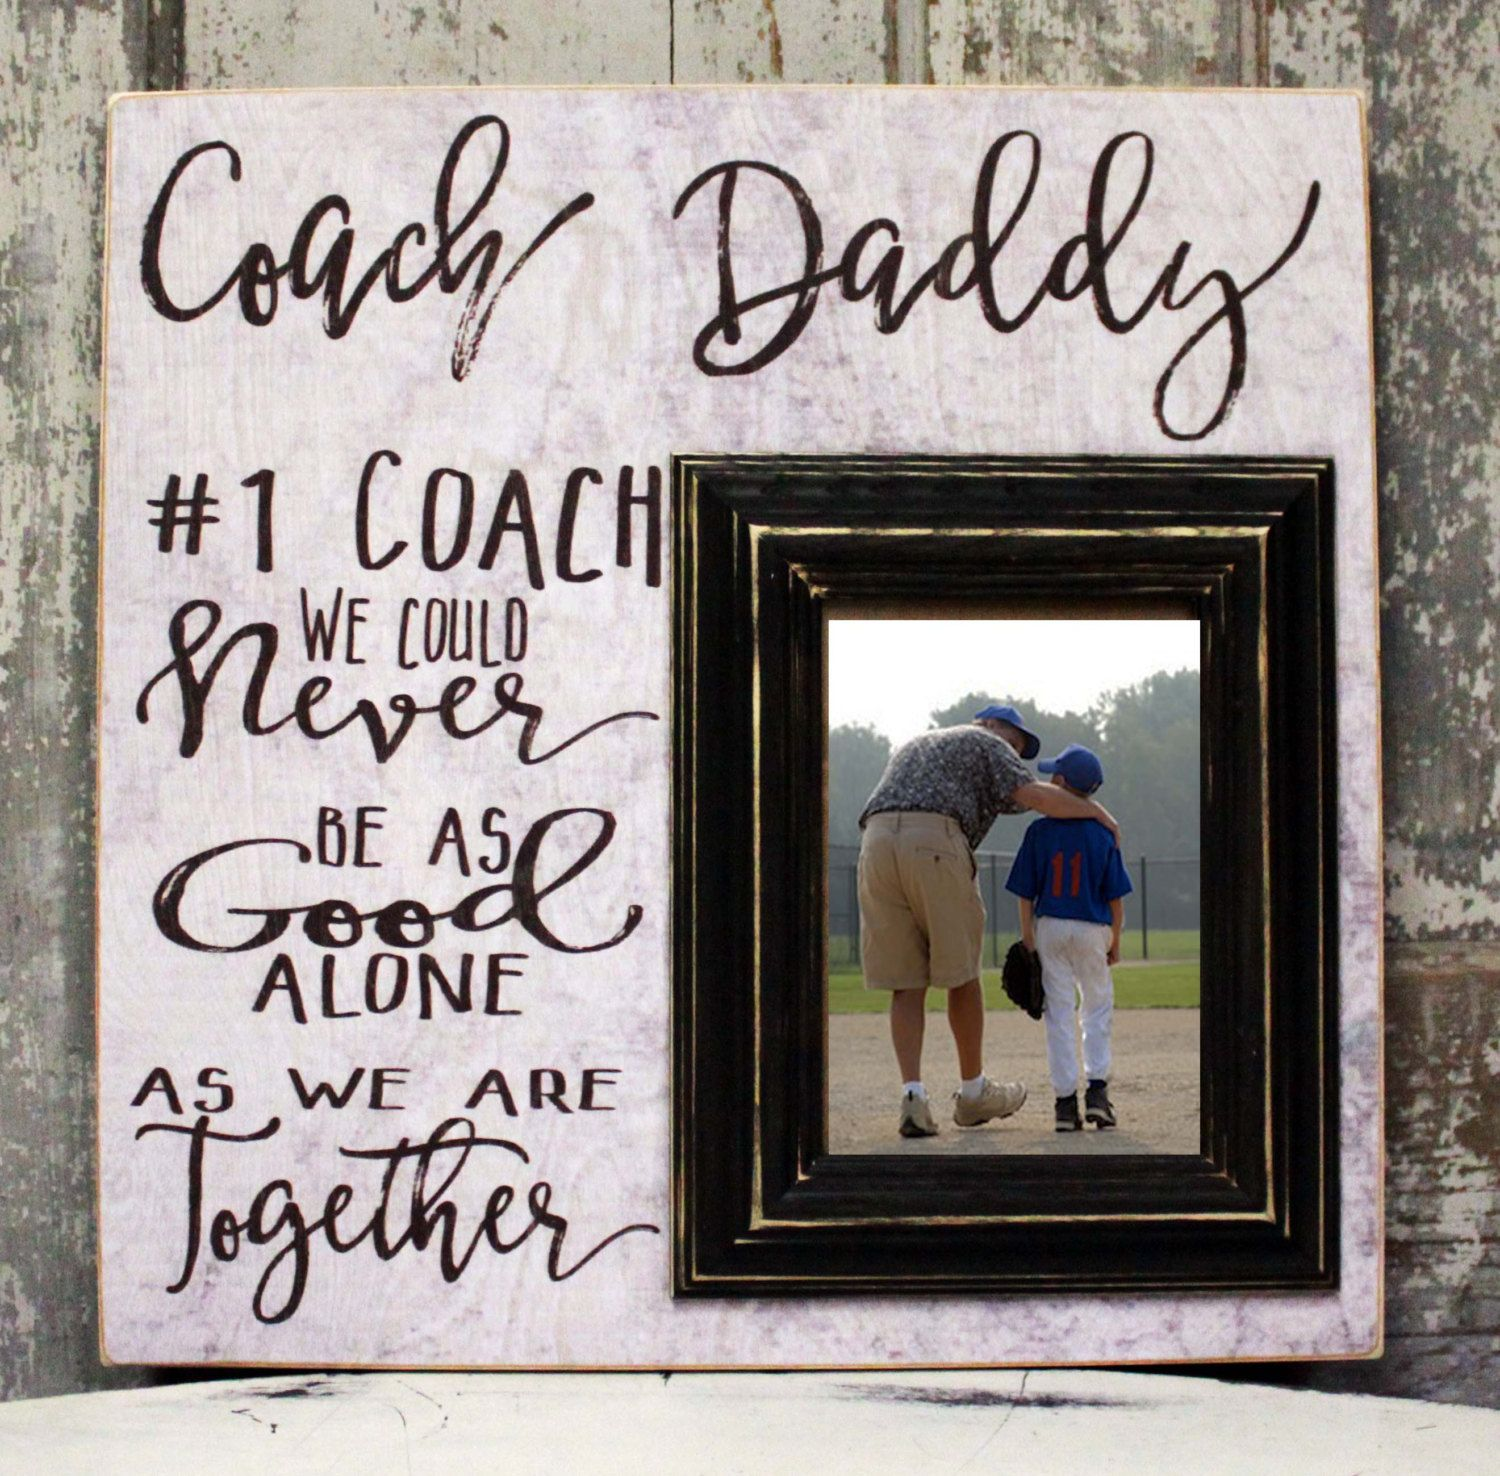 Coaches gift coaches gift soccer coaches gift football team coach dad picture frame gift 1 dad gift 1 coach custom picture jeuxipadfo Choice Image